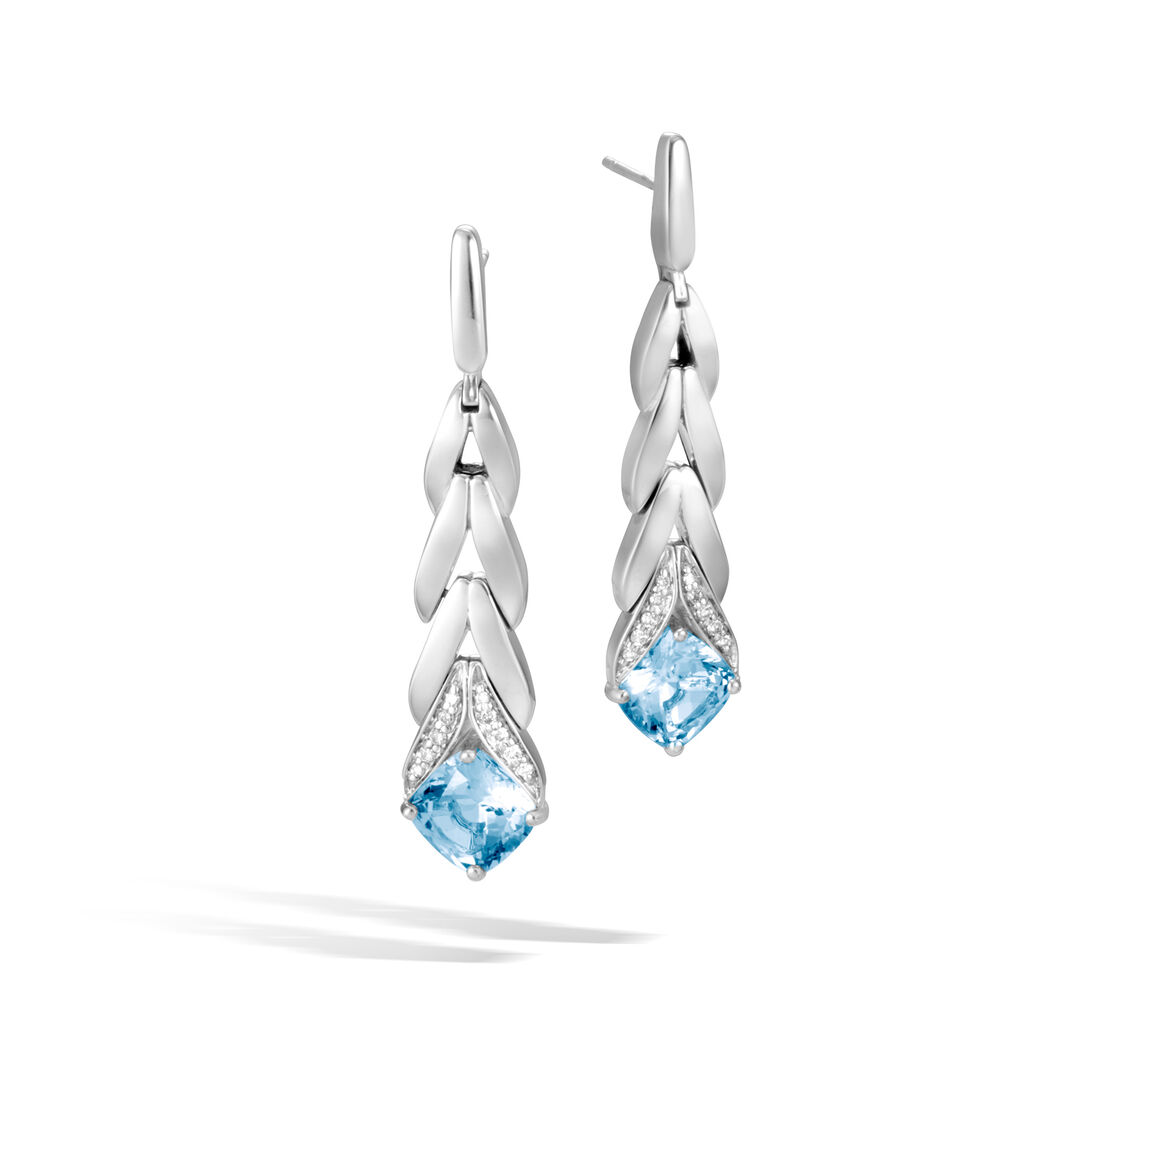 Modern Chain Magic Cut Drop Earring, Silver, Gemstone, Dia